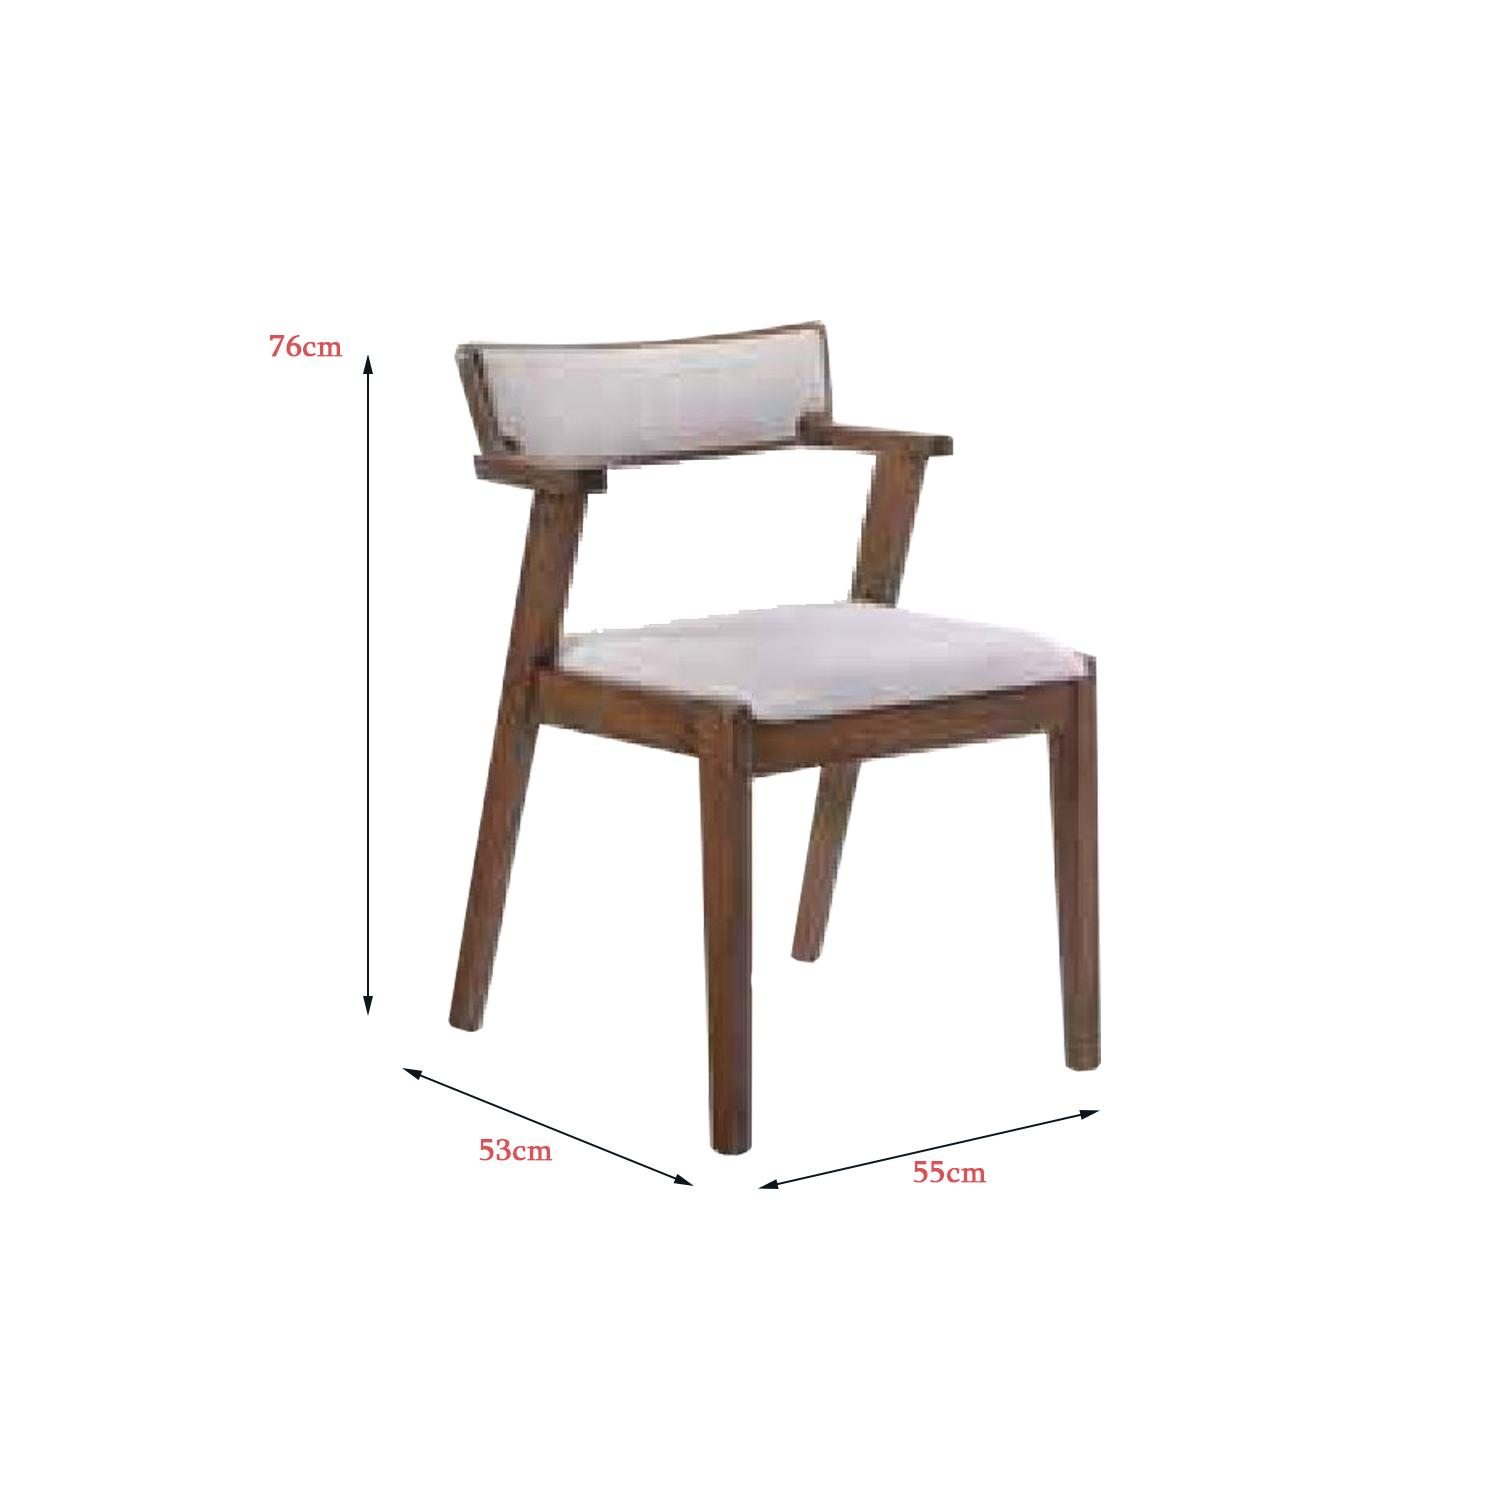 LIVING MALL_Benedetto 1 Dining Chair_FREE DELIVERY